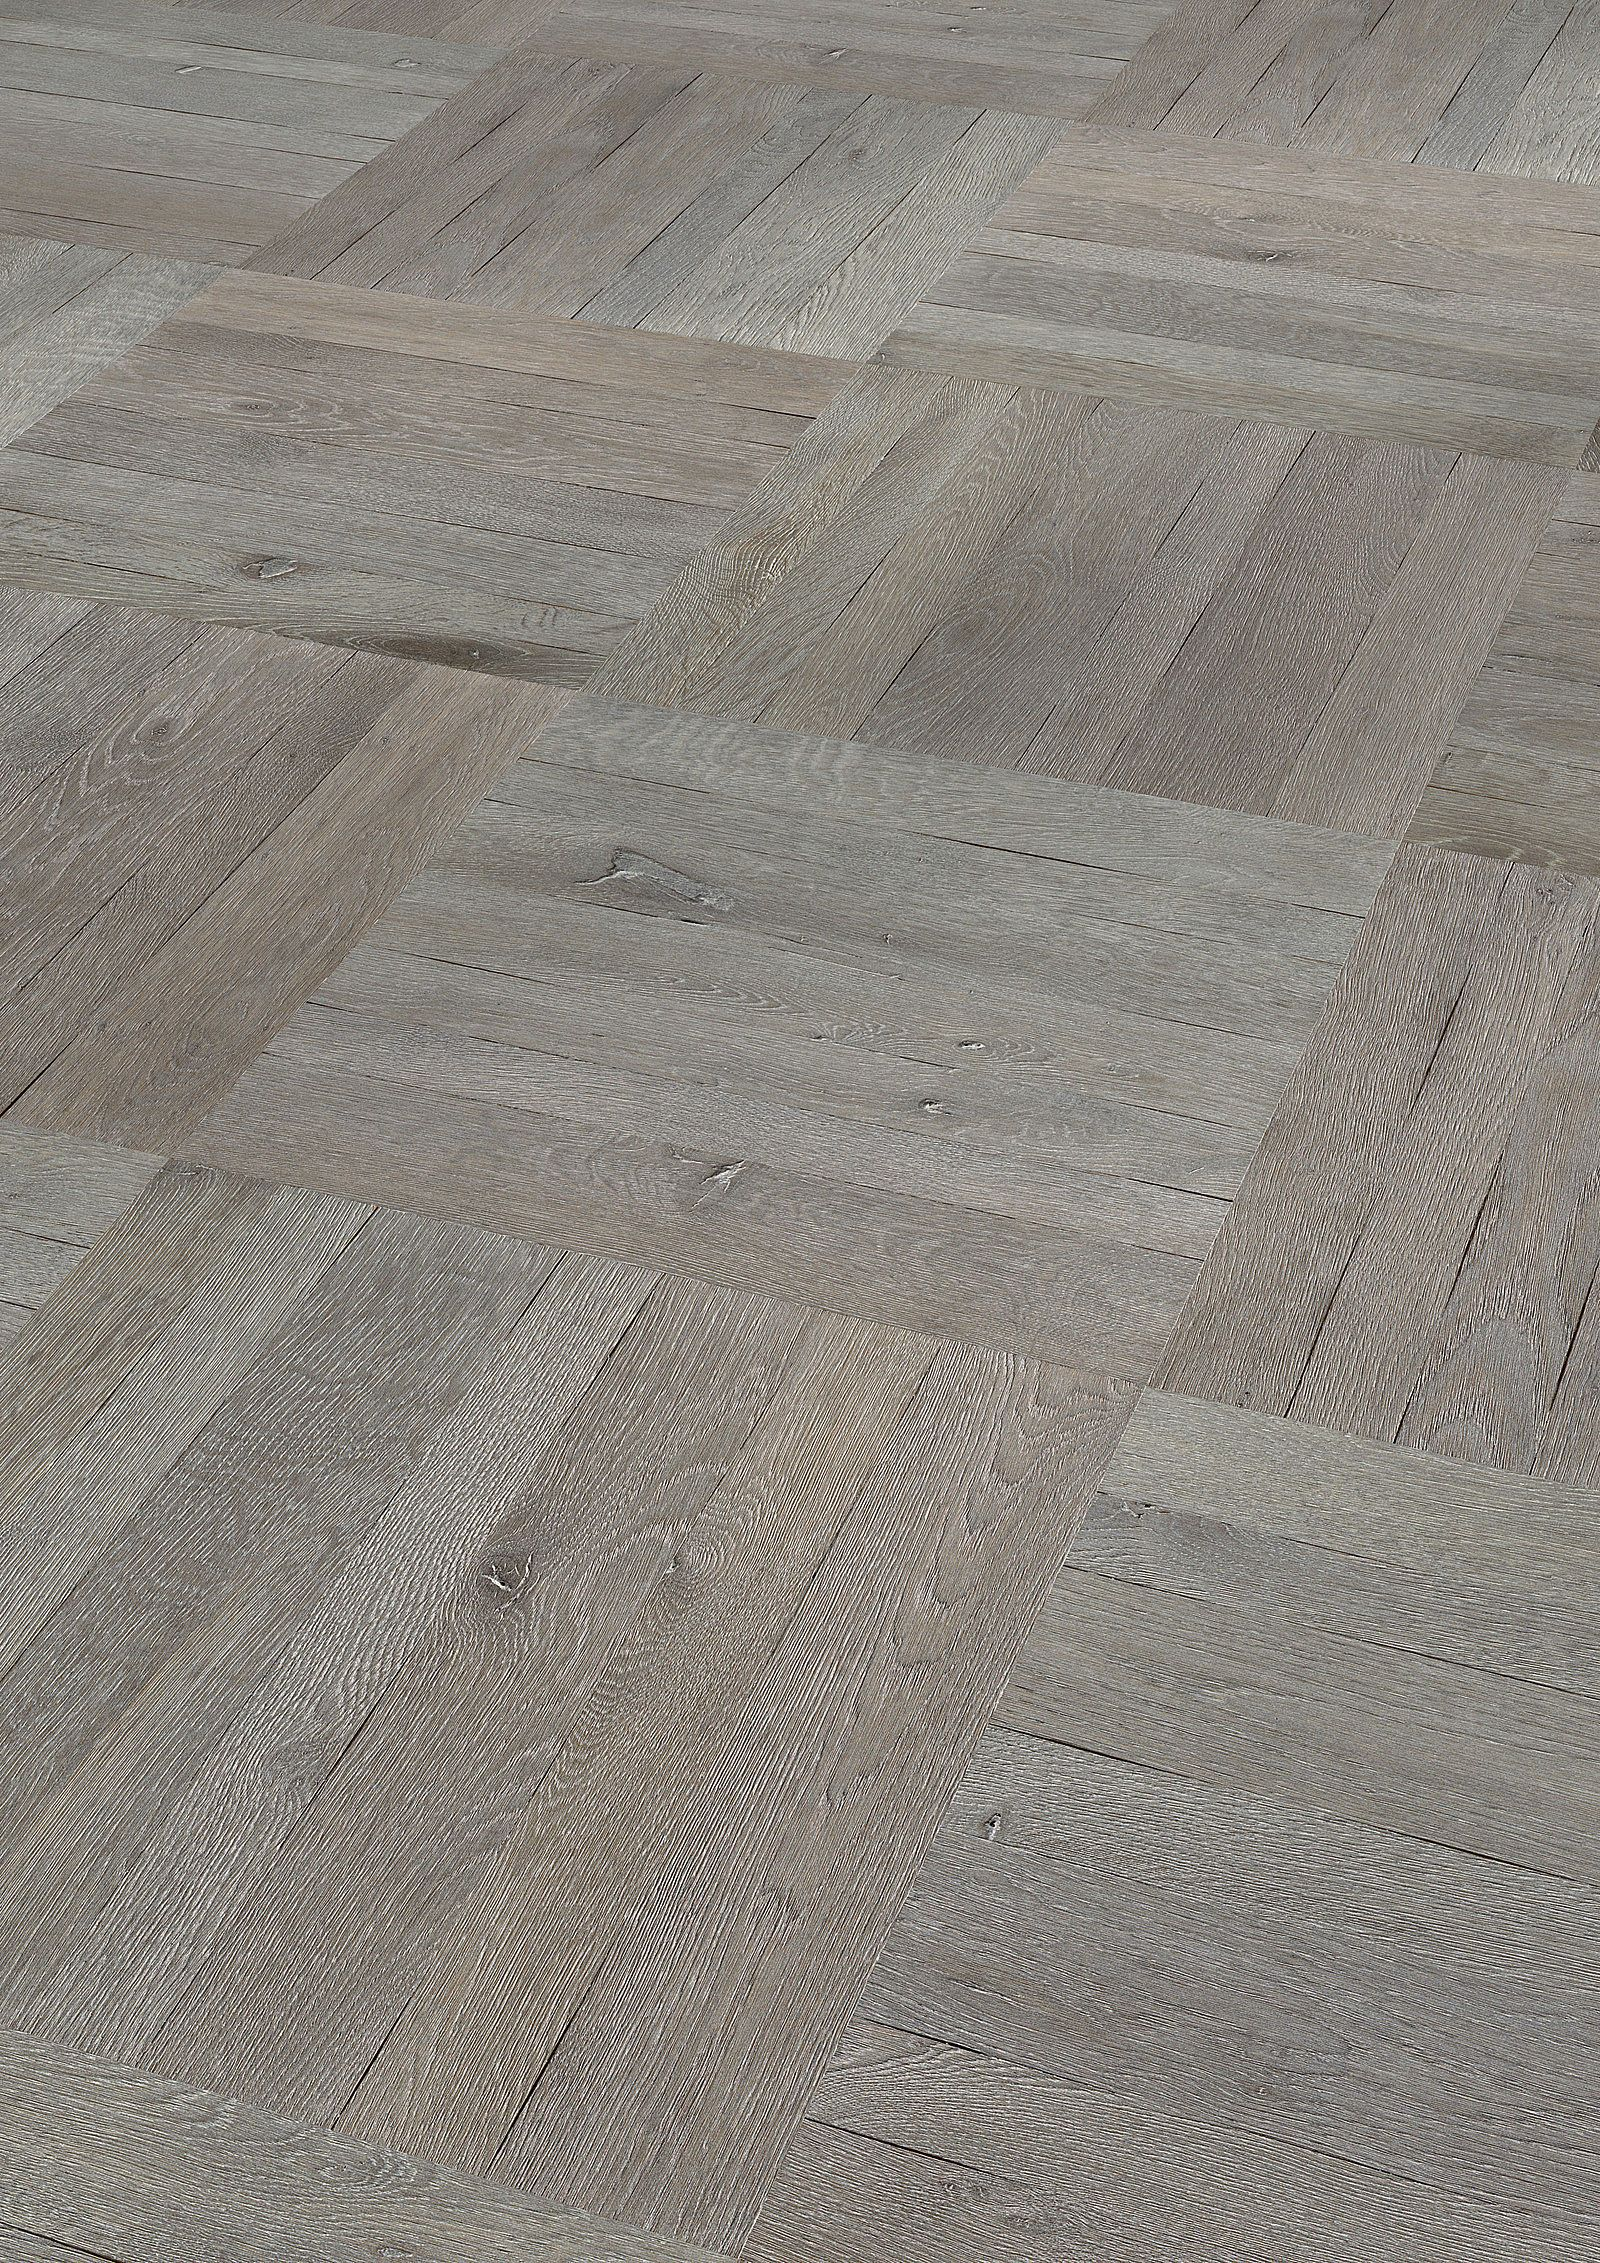 Suelos Armstrong Pq 500 Naturally Oiled Uv Oiled Parquet Floor Squared